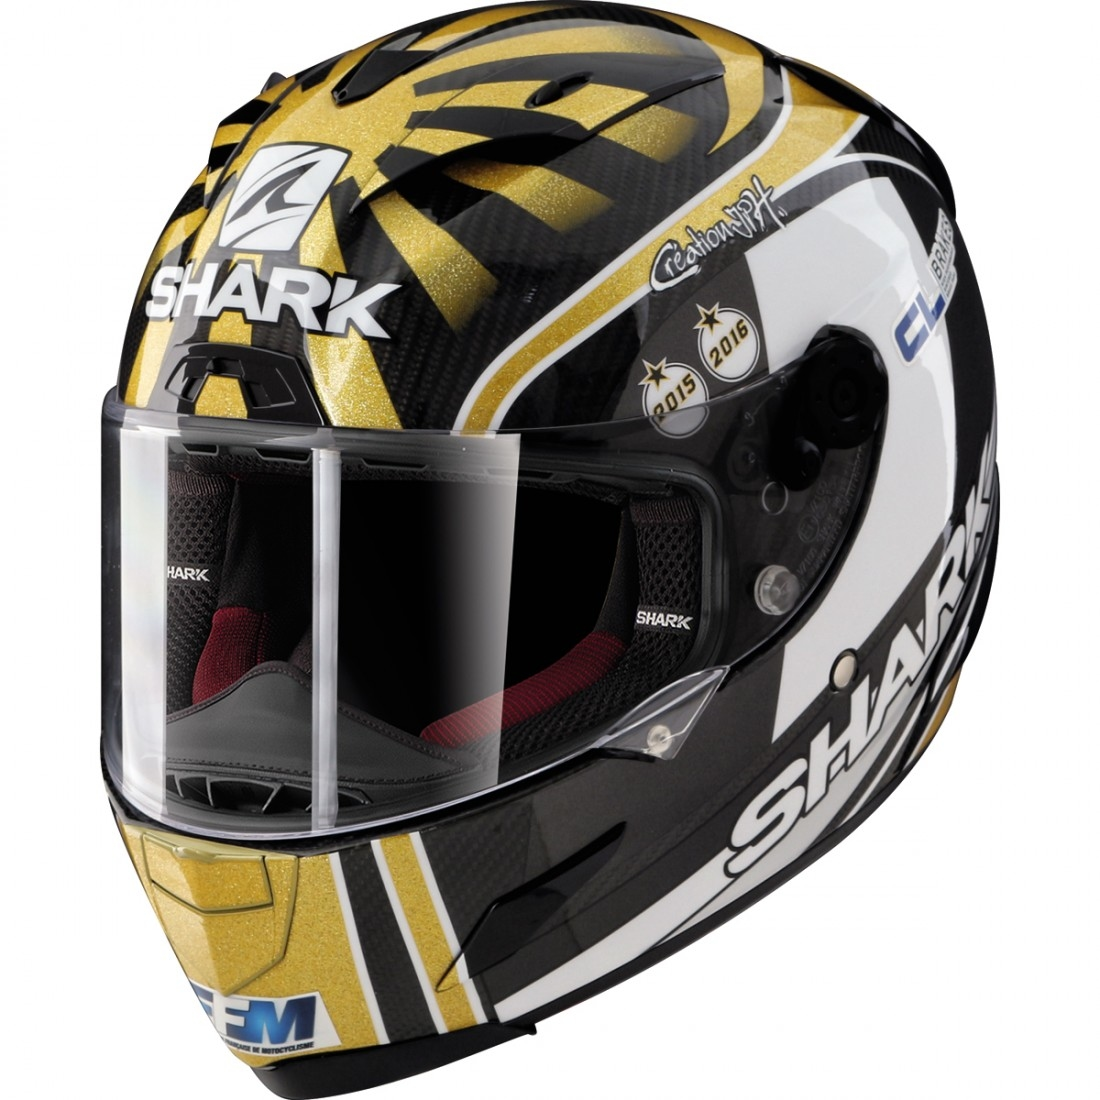 9bd940563ef60 SHARK Race-R Pro Carbon Replica Zarco World Champion 2016 Limited Edition  Carbon   Gold   Silver Helmet · Motocard